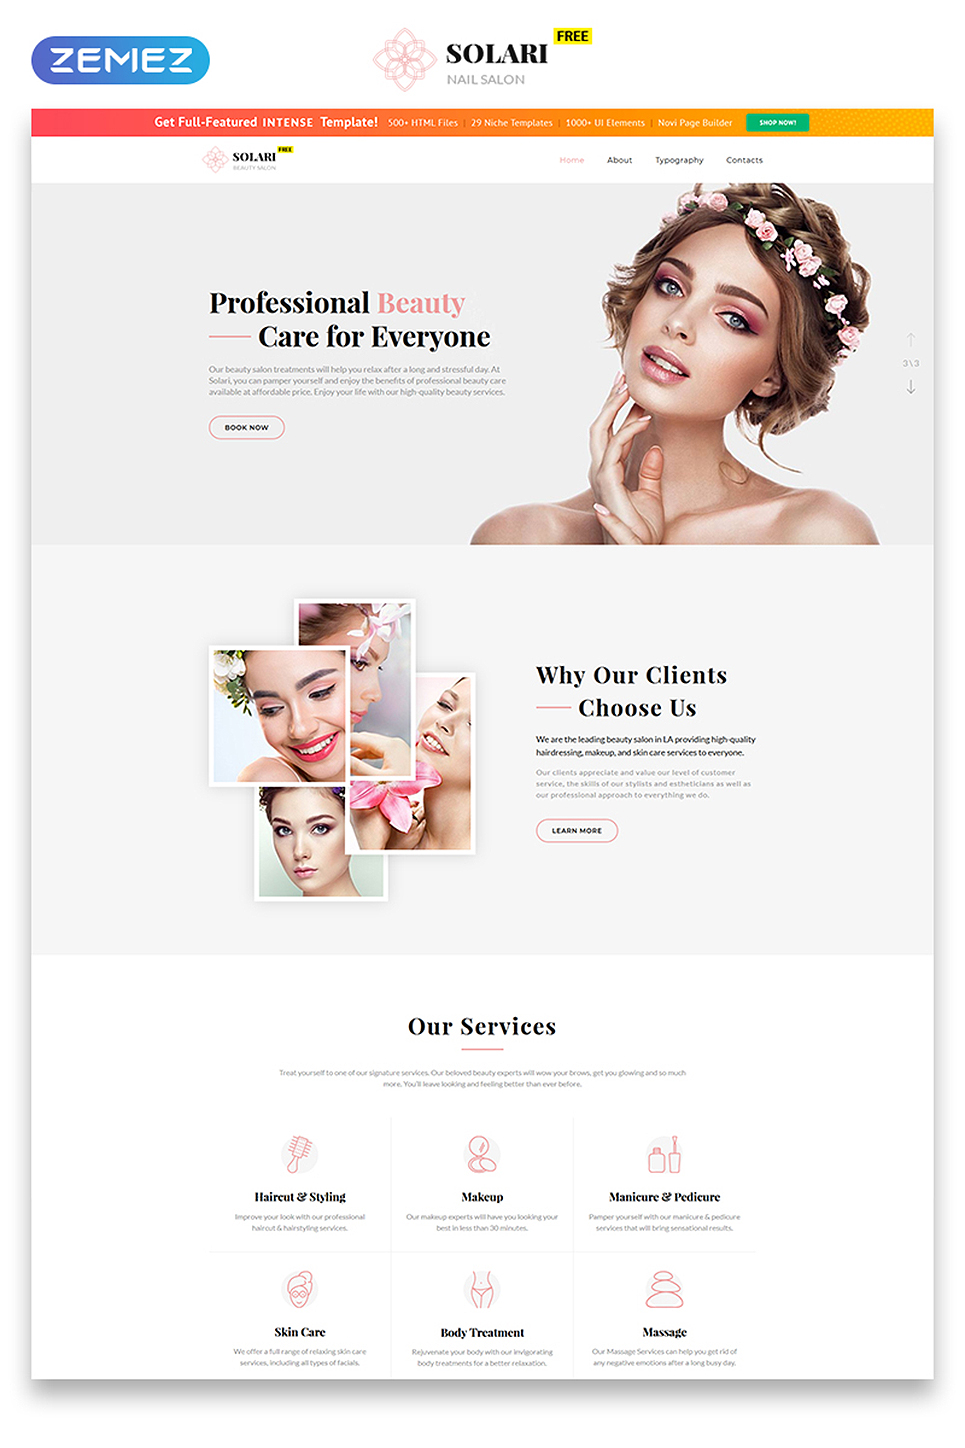 Free Bootstrap Template Website Template New Screenshots BIG